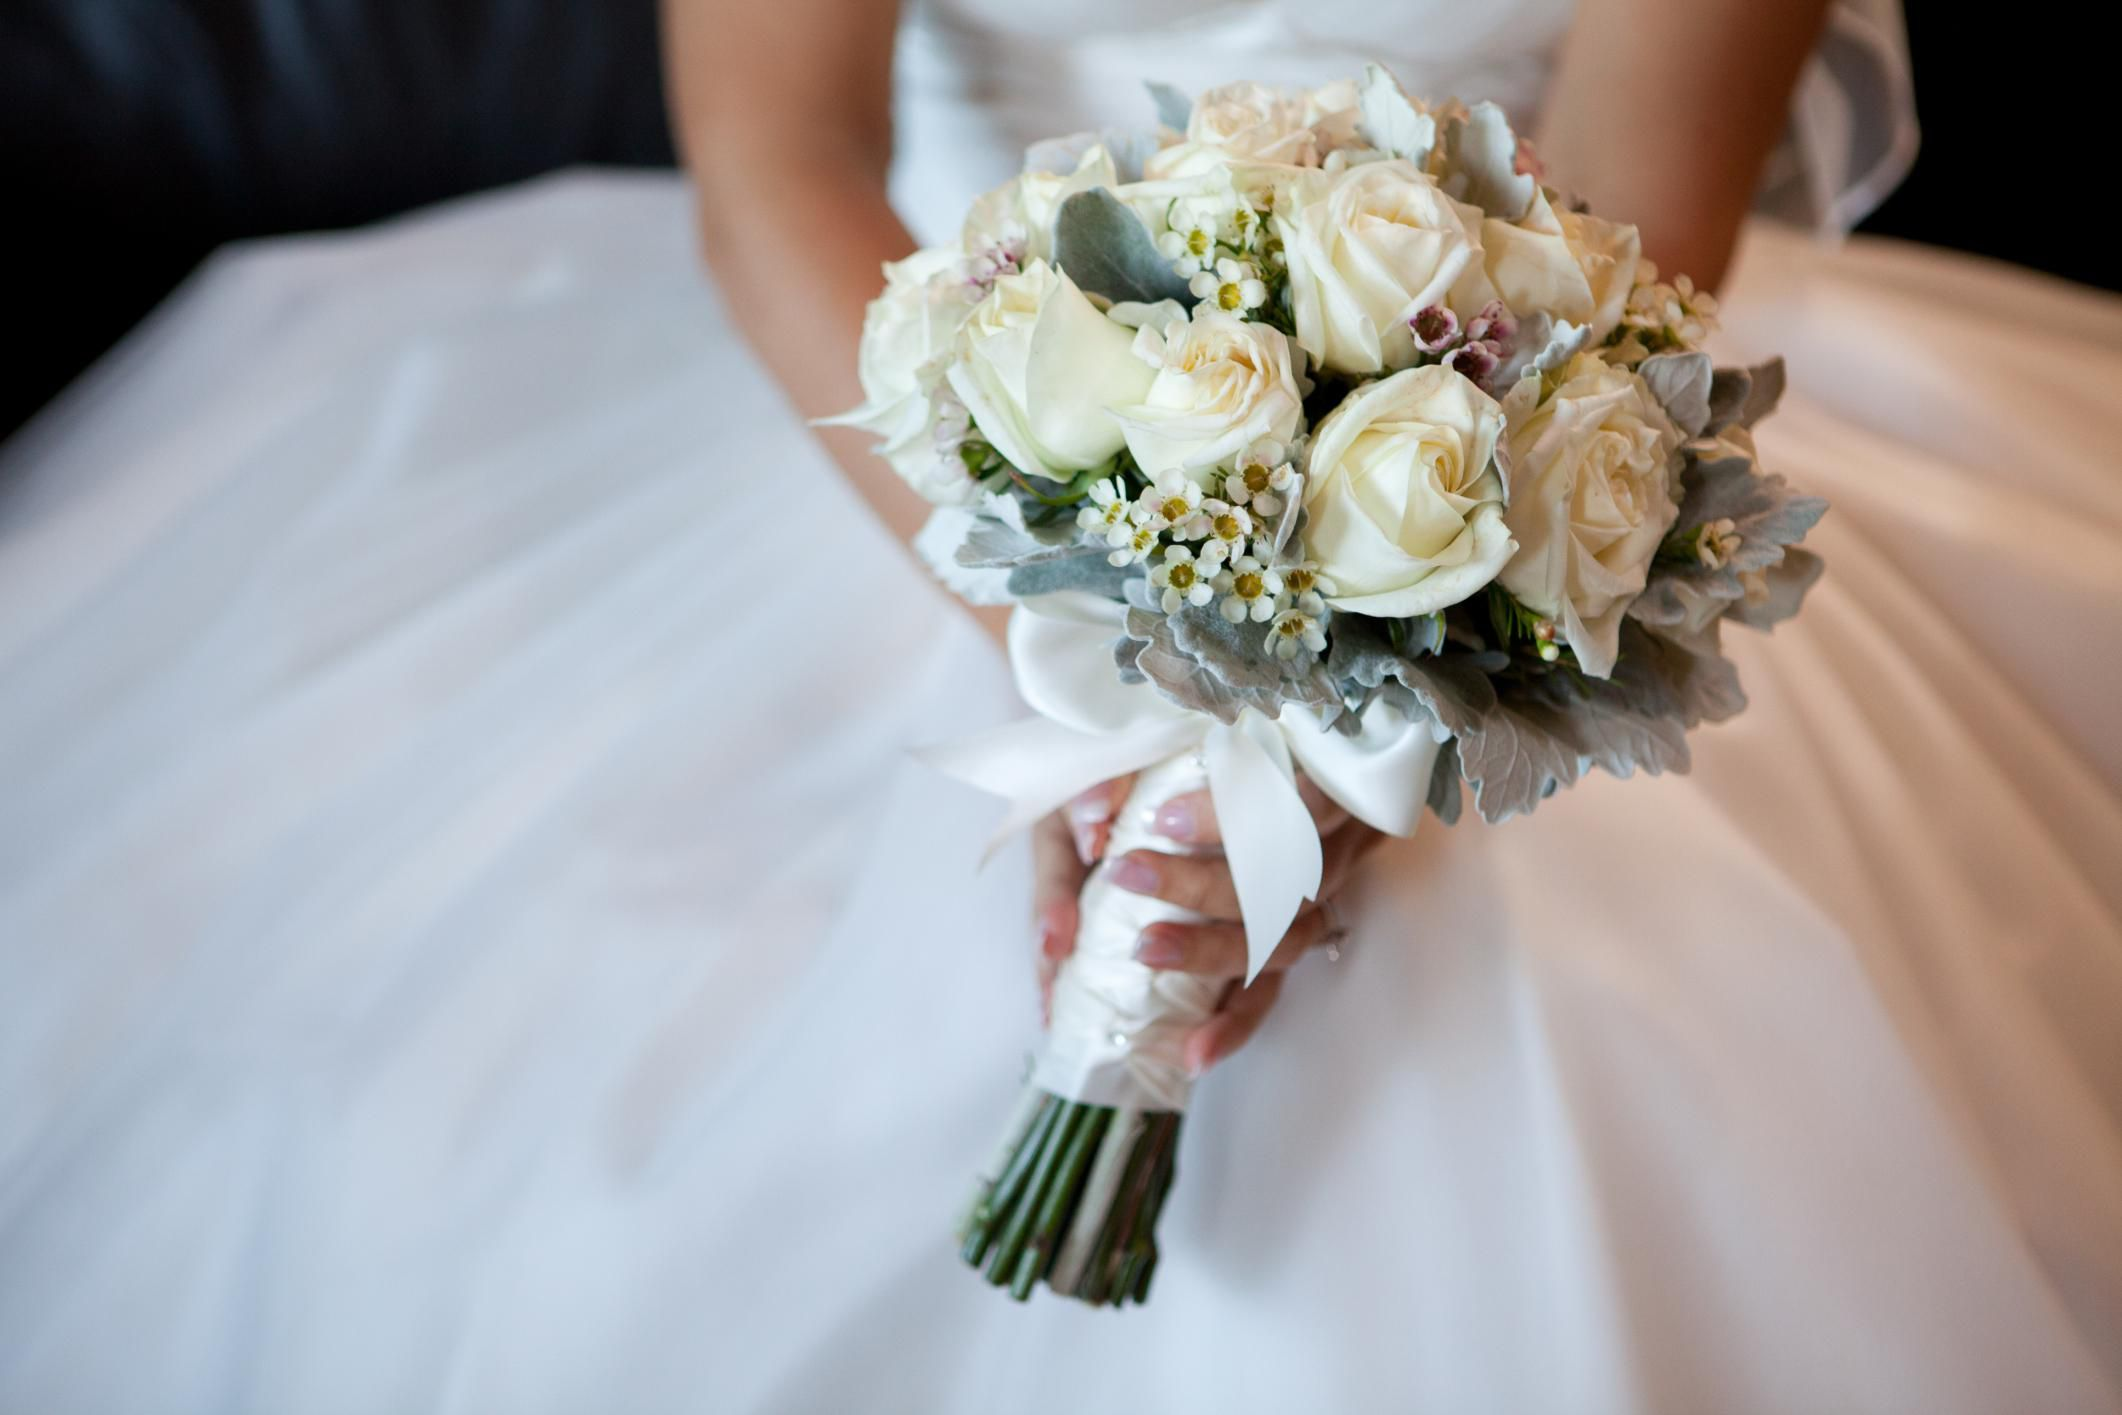 How to choose your wedding florist the ultimate wedding flower checklist junglespirit Choice Image